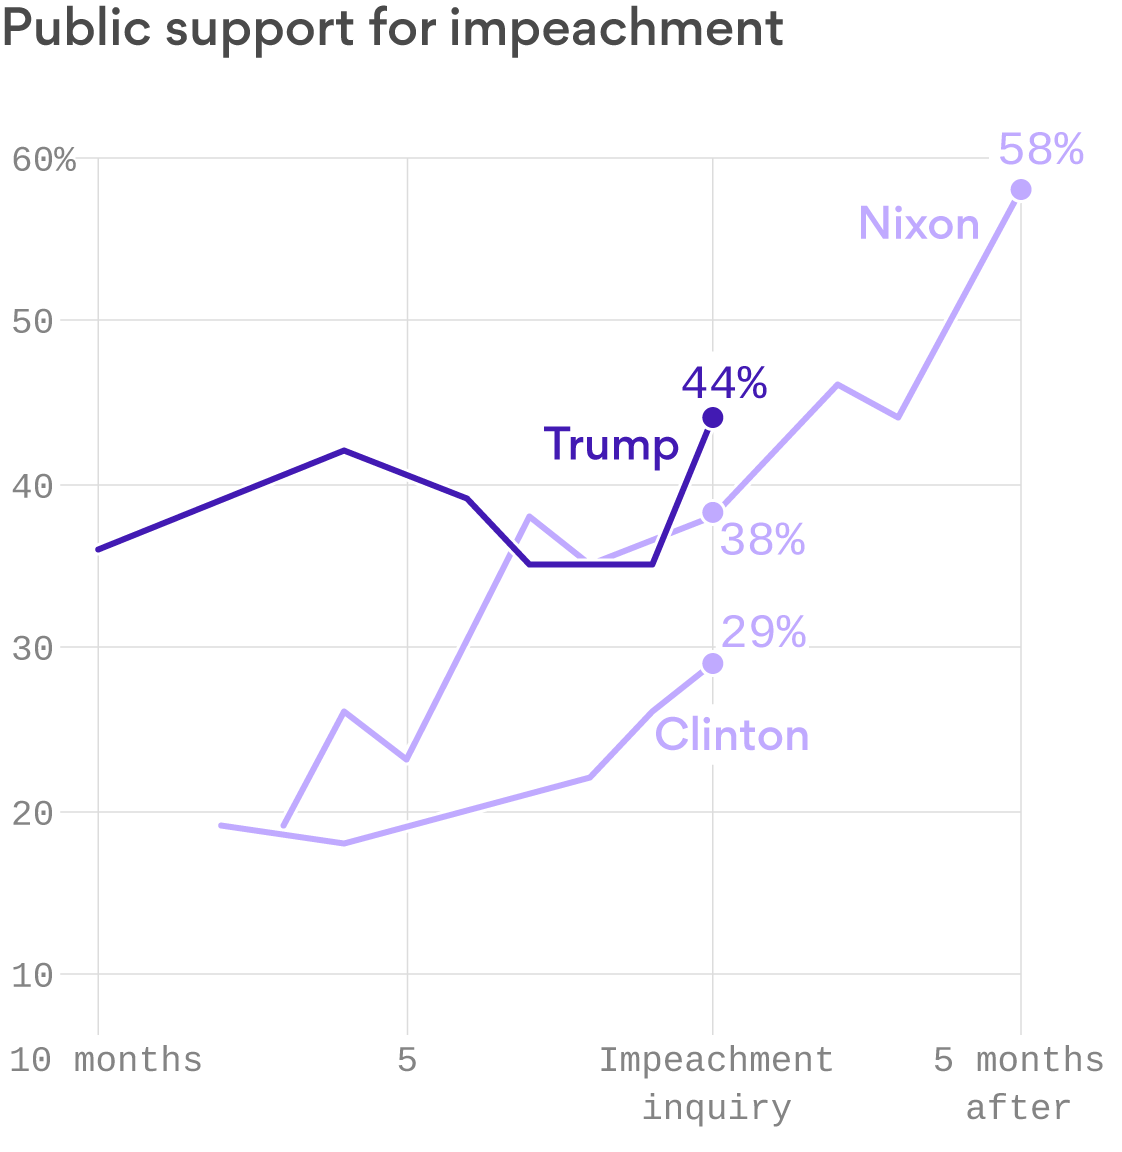 Public support for Trump's impeachment is higher than it was for Nixon and Clinton